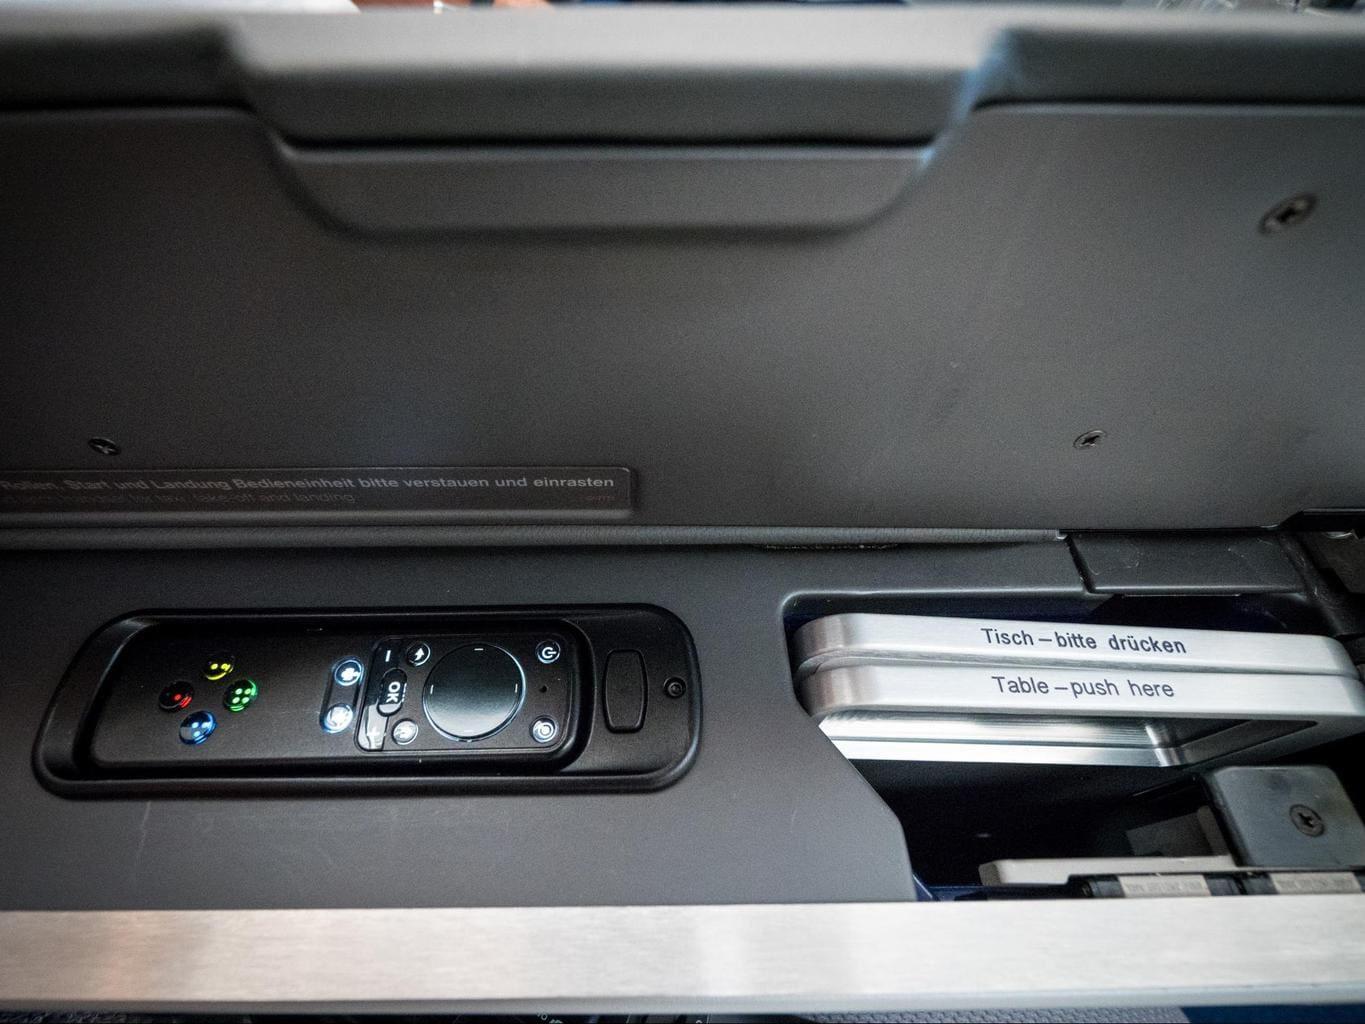 The entertainment system remote control and pull-out table